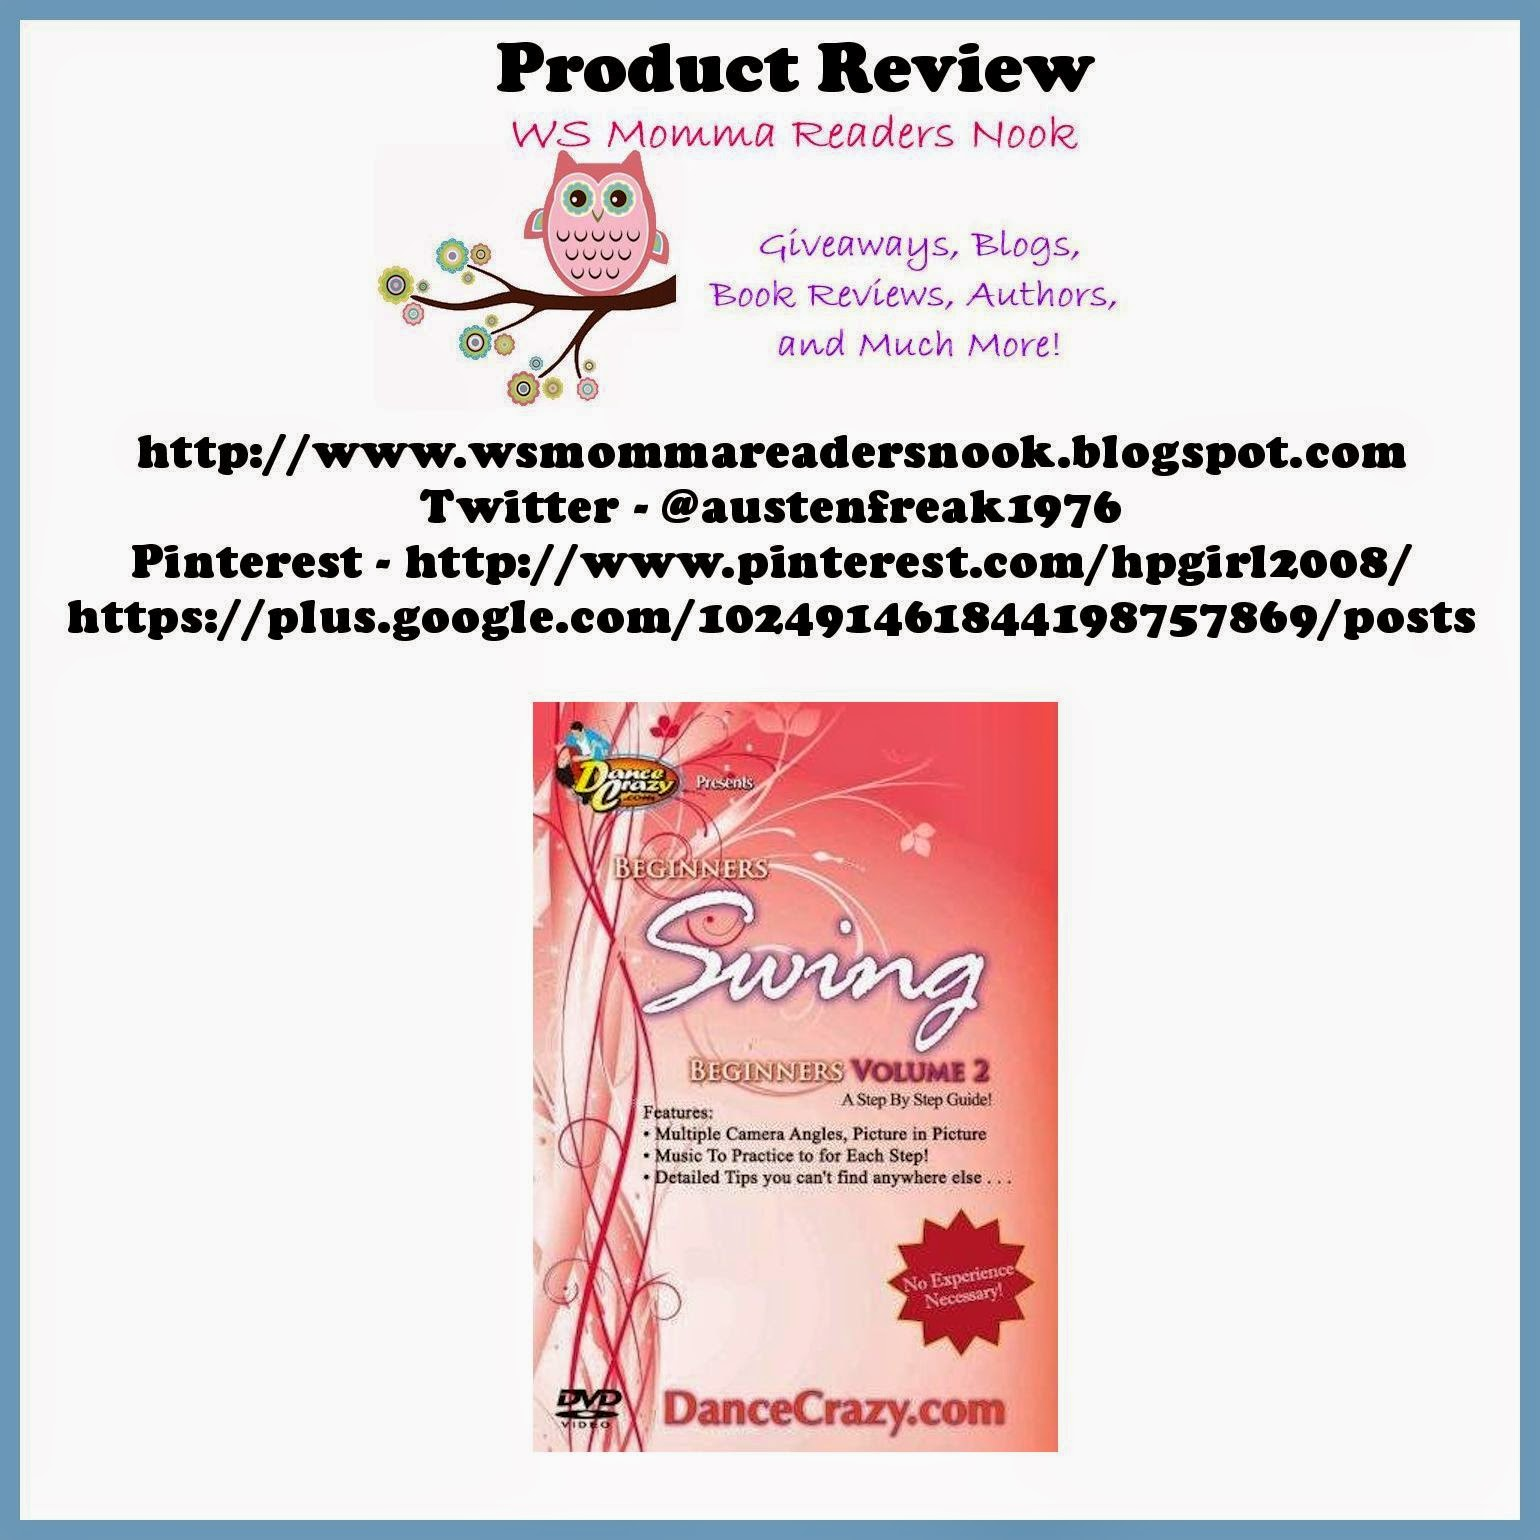 http://www.amazon.com/Learn-Swing-Dance-Beginners-Dancing/dp/B000NA2P9Q/ref=sr_1_1?ie=UTF8&qid=1419312223&sr=8-1&keywords=swing+dance+volume+2